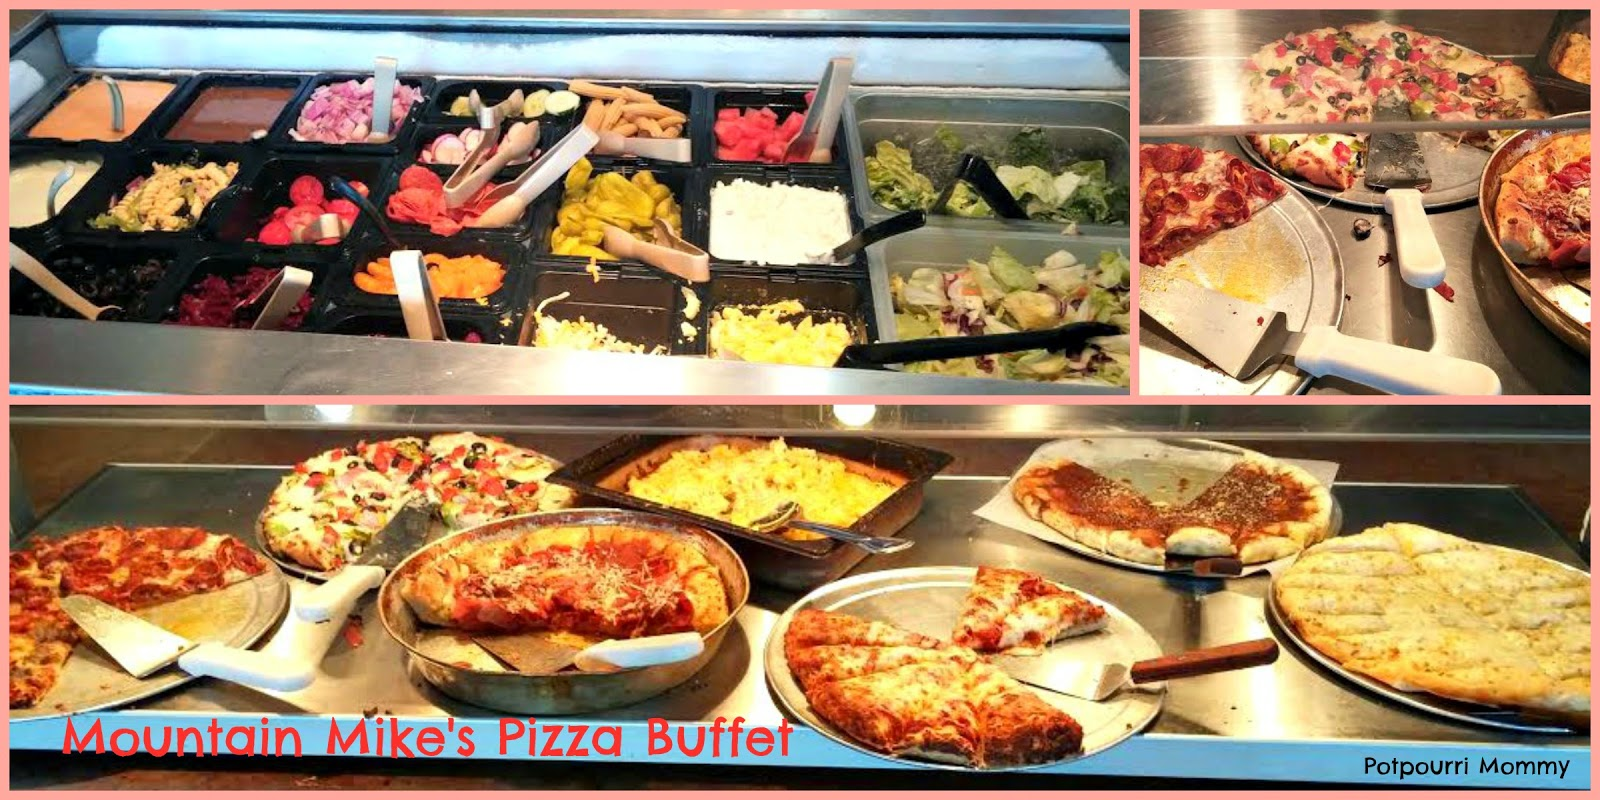 potpourri mommy pizza pizza easy homemade pizza and mountain rh potpourrimommy blogspot com pizza buffet utah county pizza buffet utah clinton